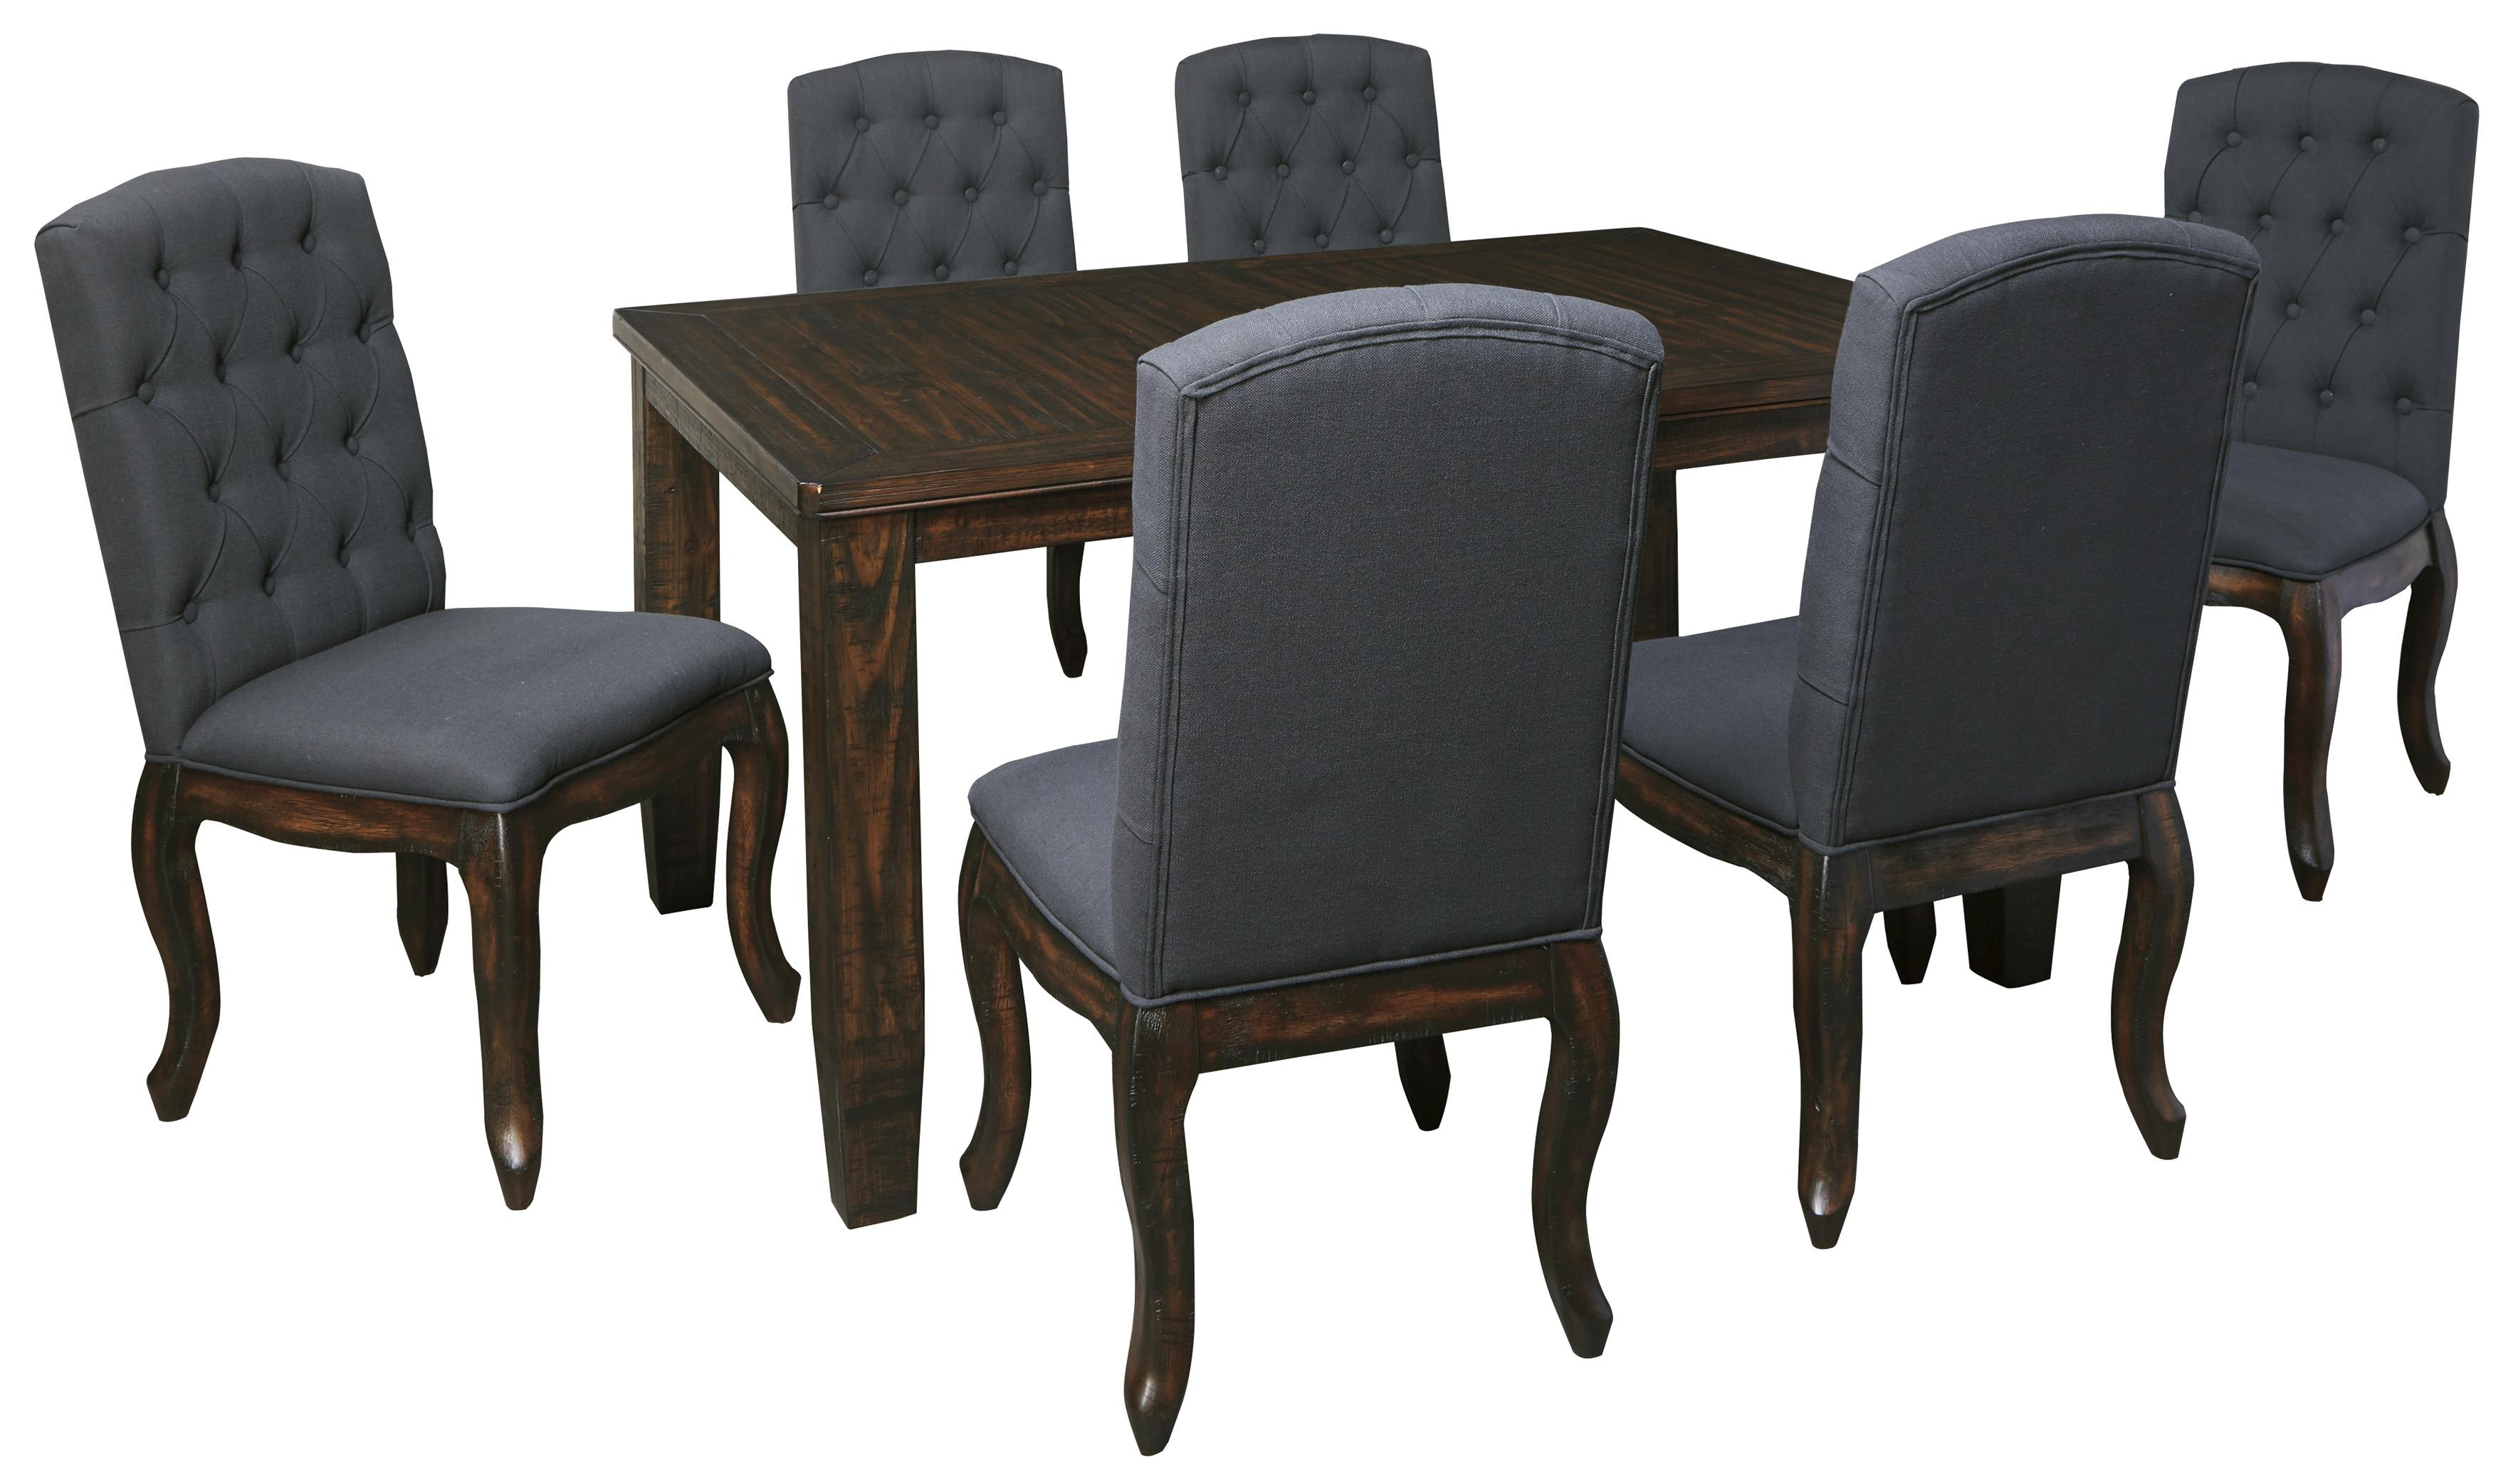 Signature Design by Ashley Trudell 7-Piece Rectangular Dining Table Set - Item Number: D658-35+6x02